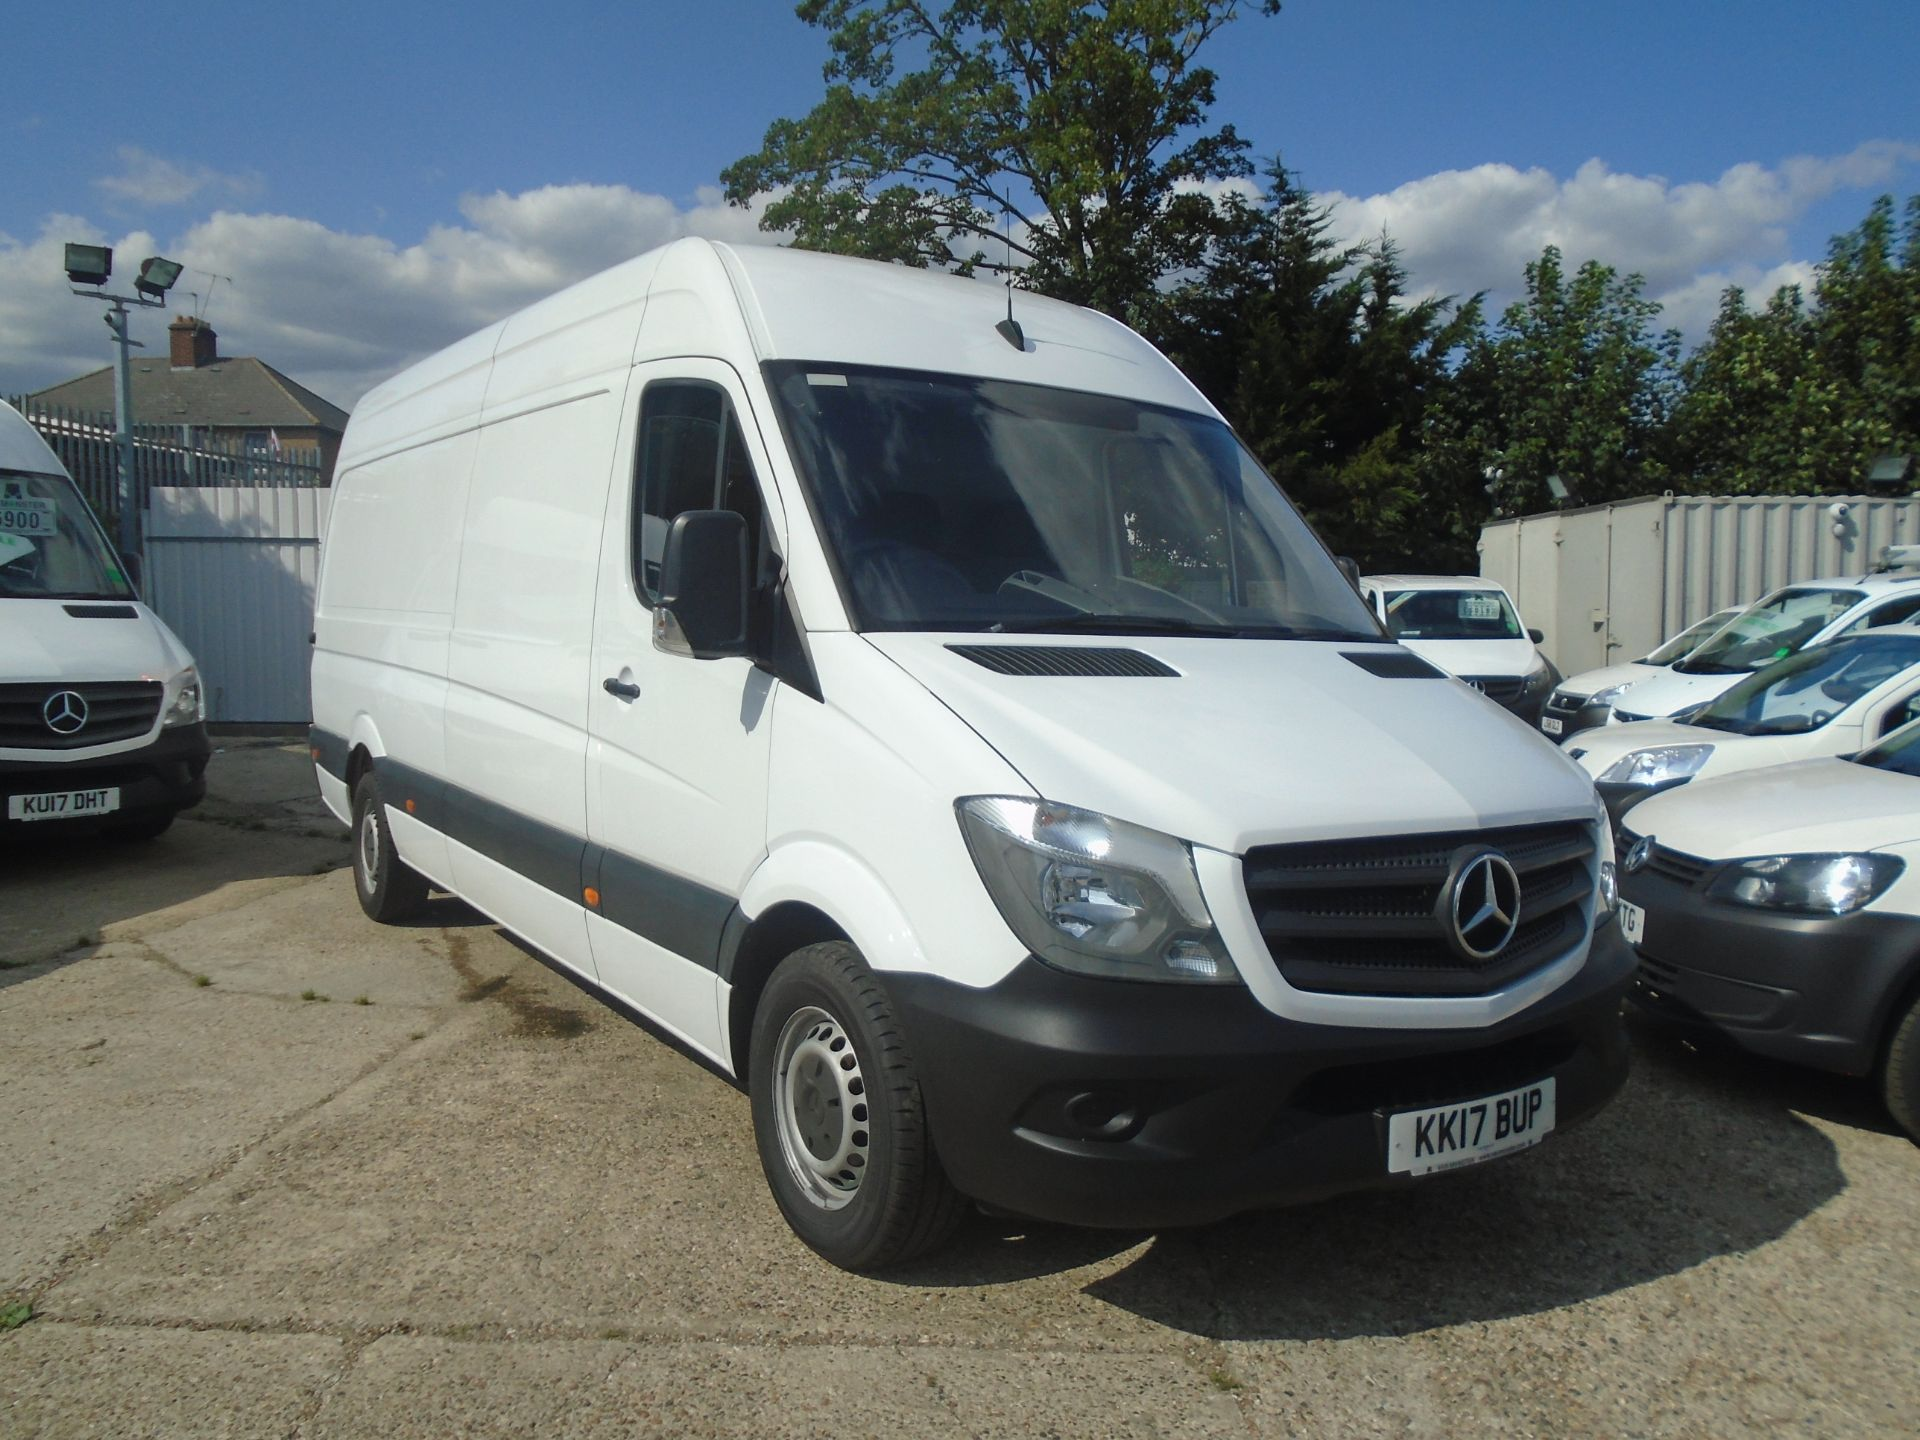 2017 Mercedes-Benz Sprinter 3.5T High Roof Van (KK17BUP)